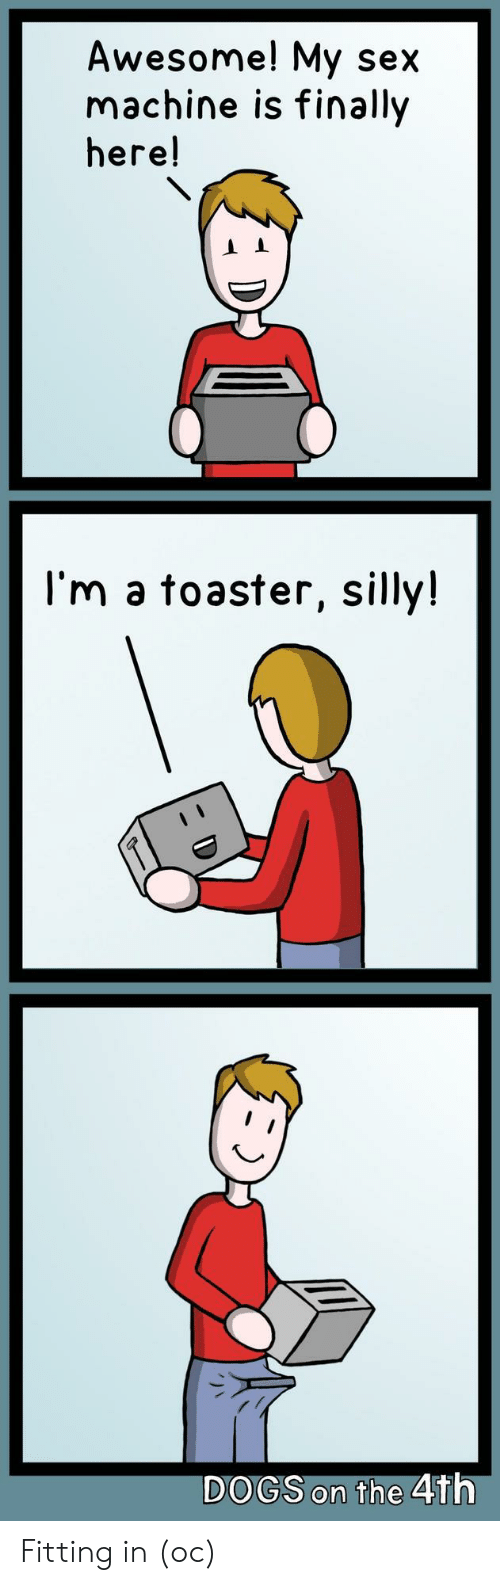 Dogs, Sex, and Awesome: Awesome! My sex  machine is finally  here!  I'm a toaster, silly!  DOGS on the 4th Fitting in (oc)